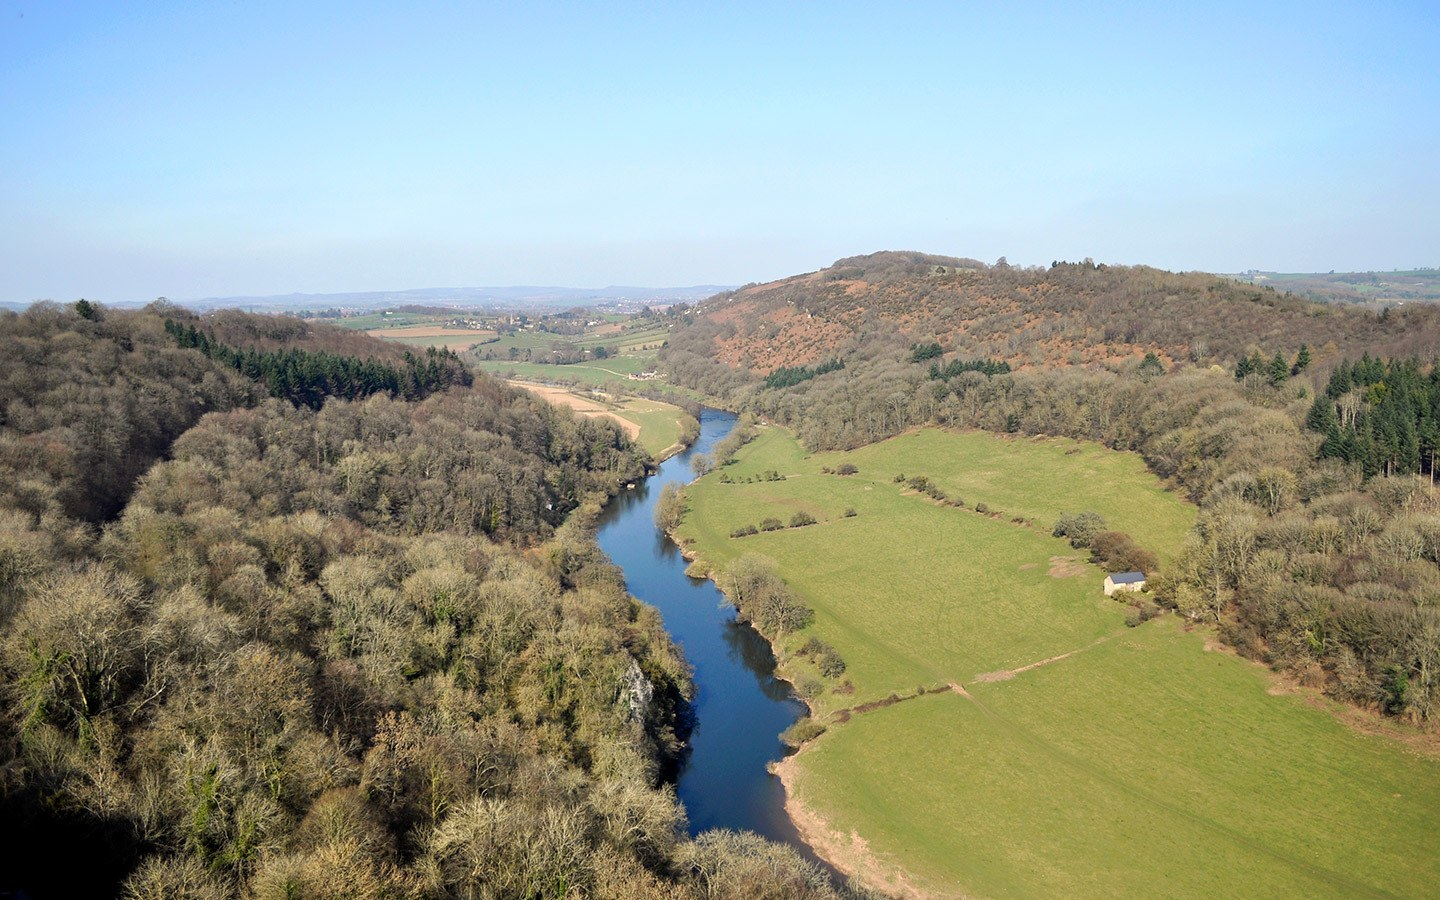 Highlights of the Wye Valley, on the border of England and Wales, with castles, abbeys and scenic views, in the footsteps of Gilpin's Wye Tour 250 years ago